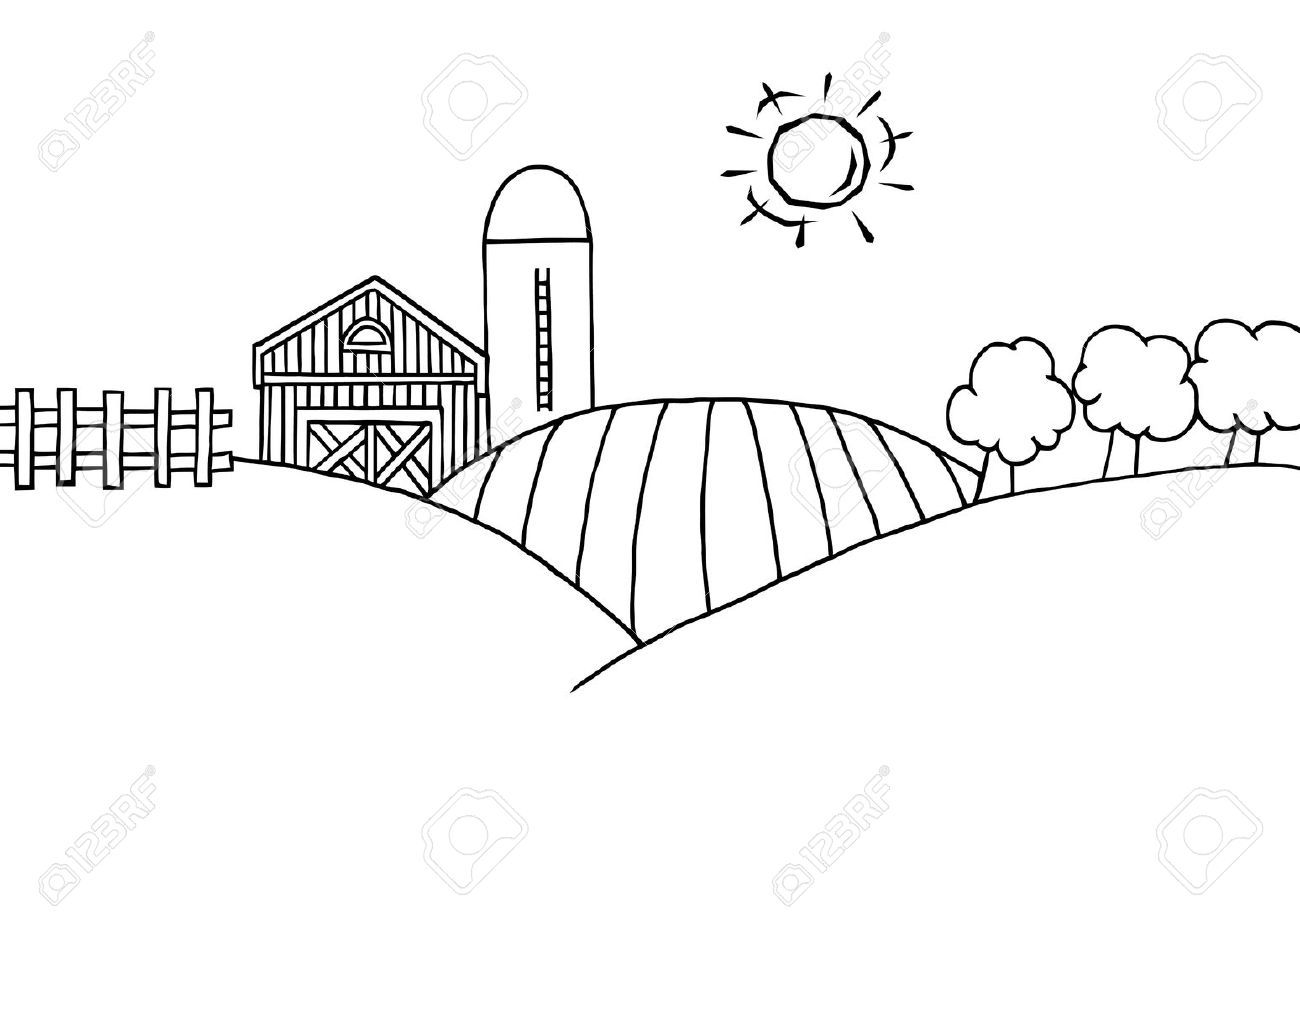 Stock vector crafts farm. Free clipart black and white play farming